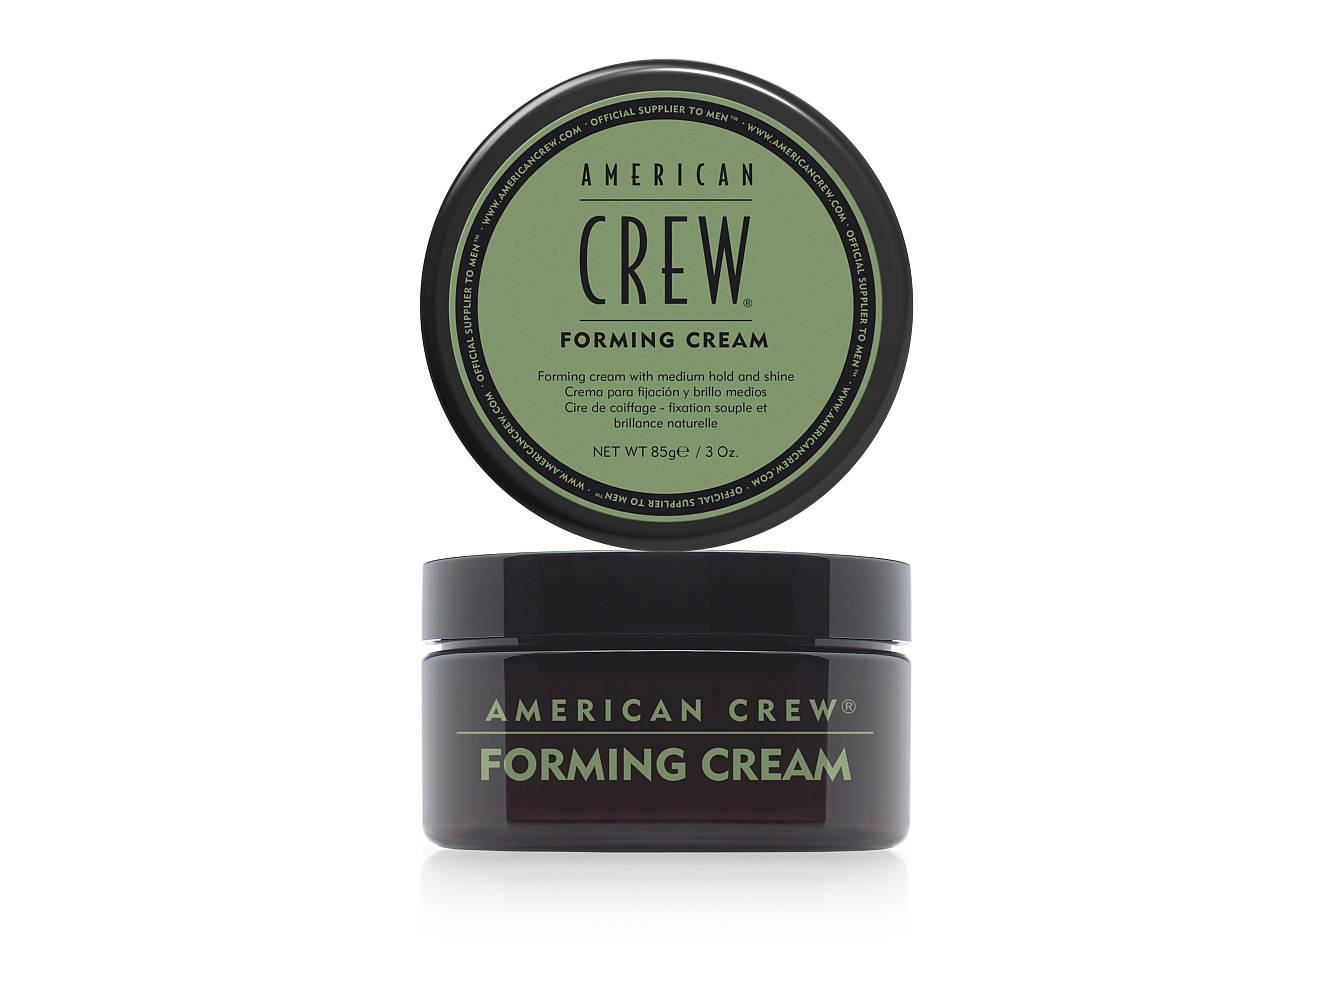 Arma Beauty - American Crew - Forming Cream